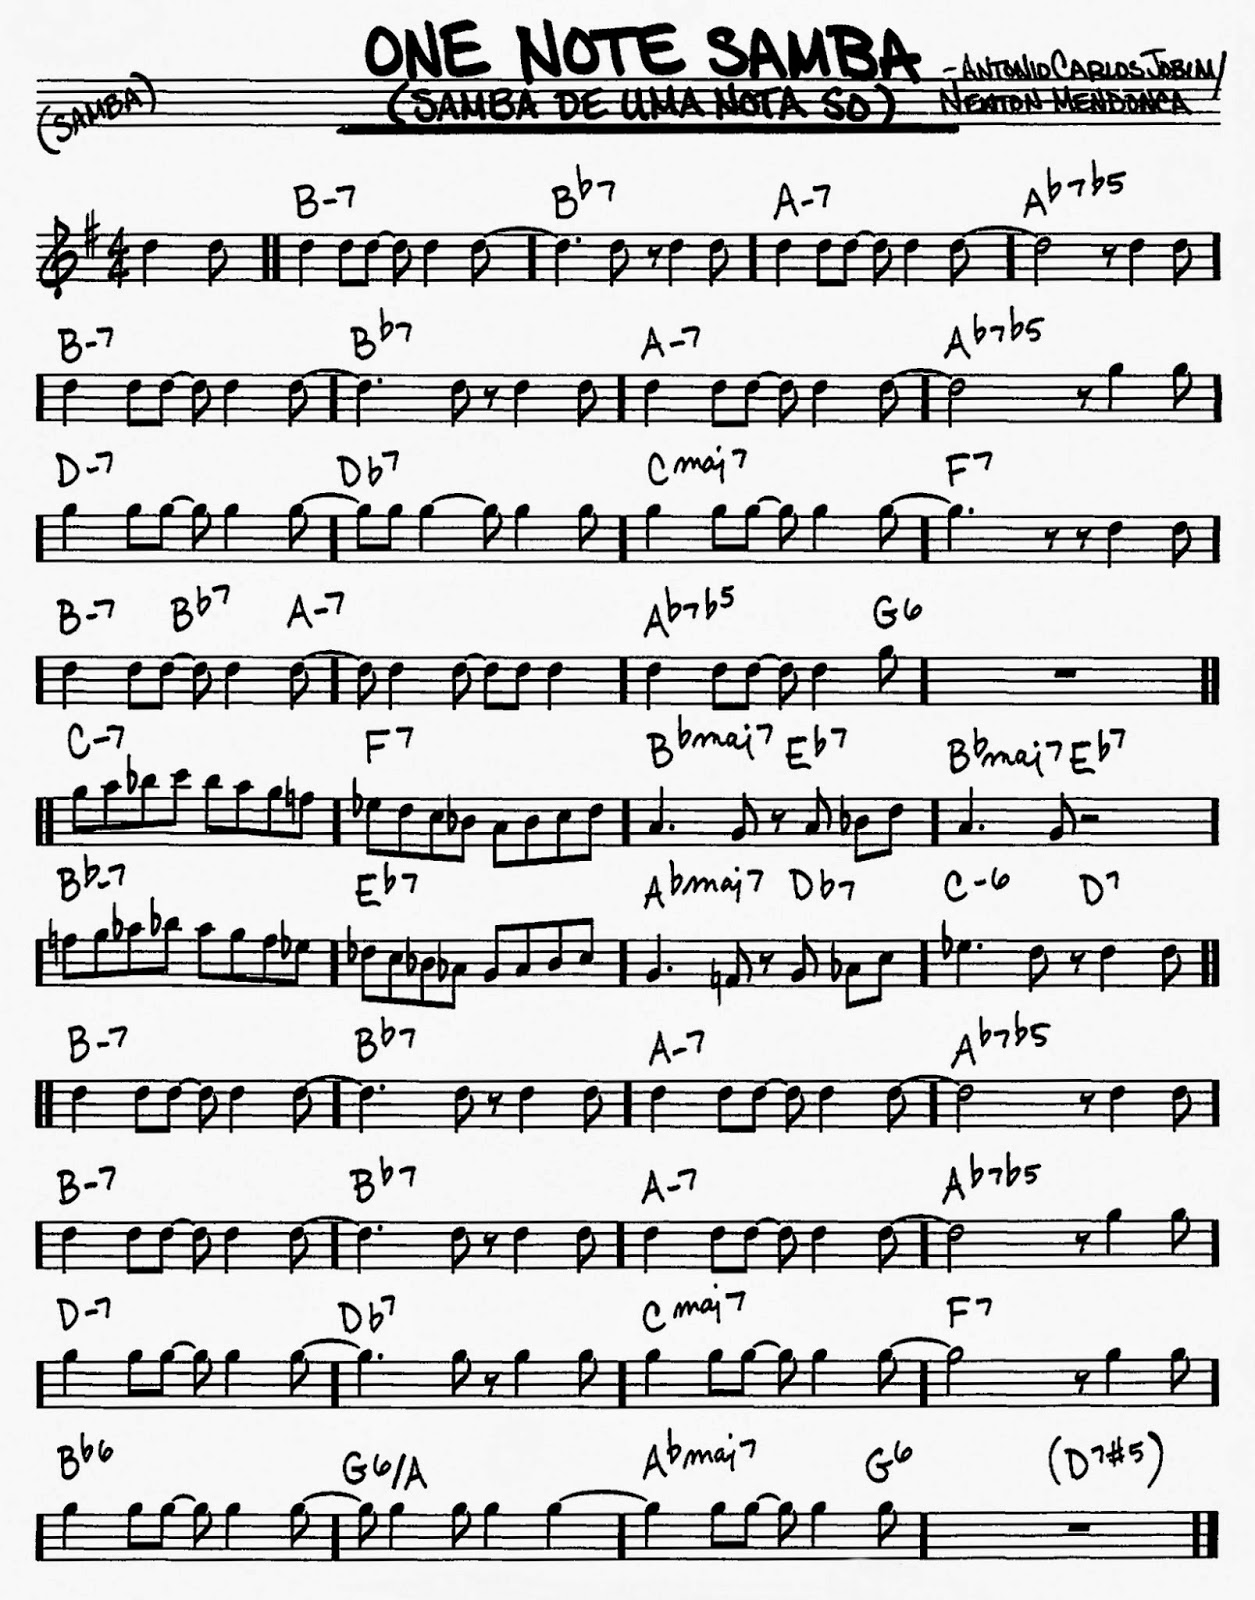 John hancottes bass desires july 2014 lead sheet with correct chord changes as recorded by jobim the composer of desafinado plays and stan getz with astrud gilberto getz au go go hexwebz Gallery